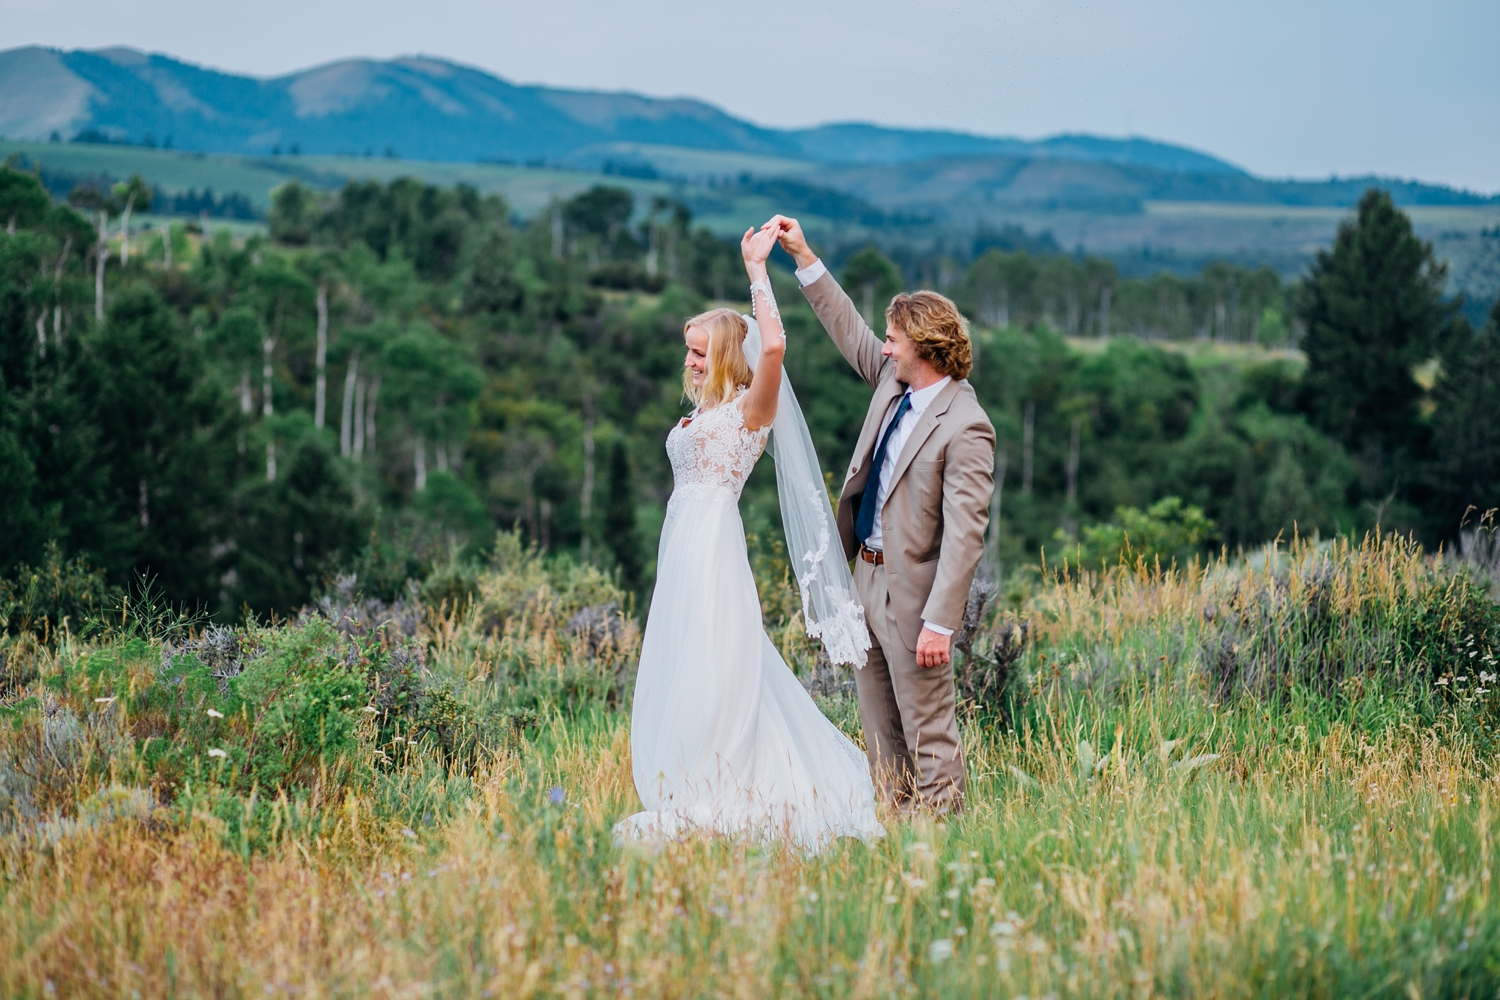 idaho+rexburg+wedding+cheyenne+wyoming+colorado+rocky+mountain+national+park+estes+park+engagement+wedding_1837.jpg